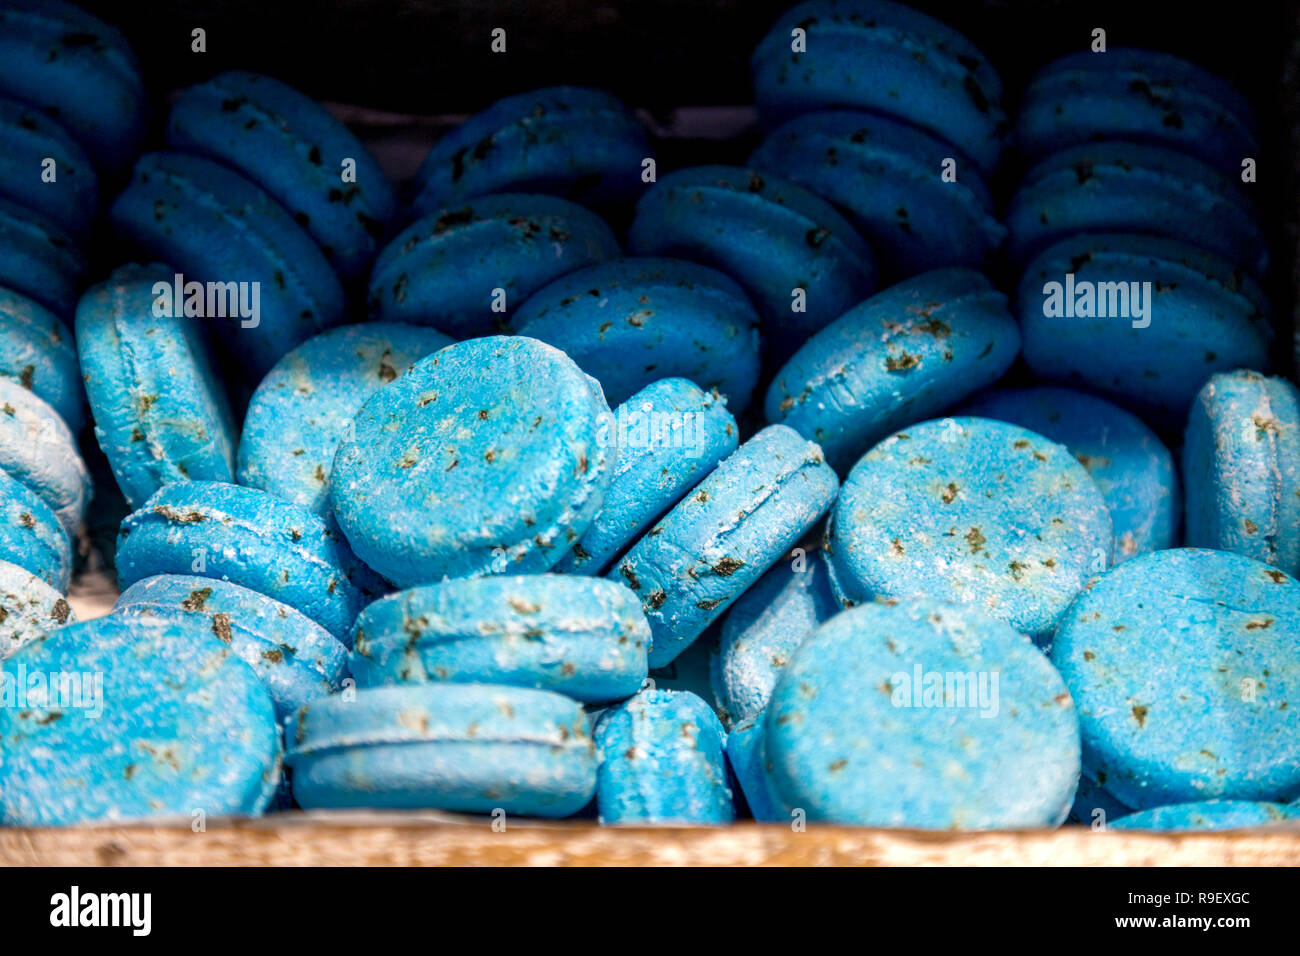 Blue solid shampoo bars at the Lush handmade cosmetics store in Oxford Street, London, UK - Stock Image